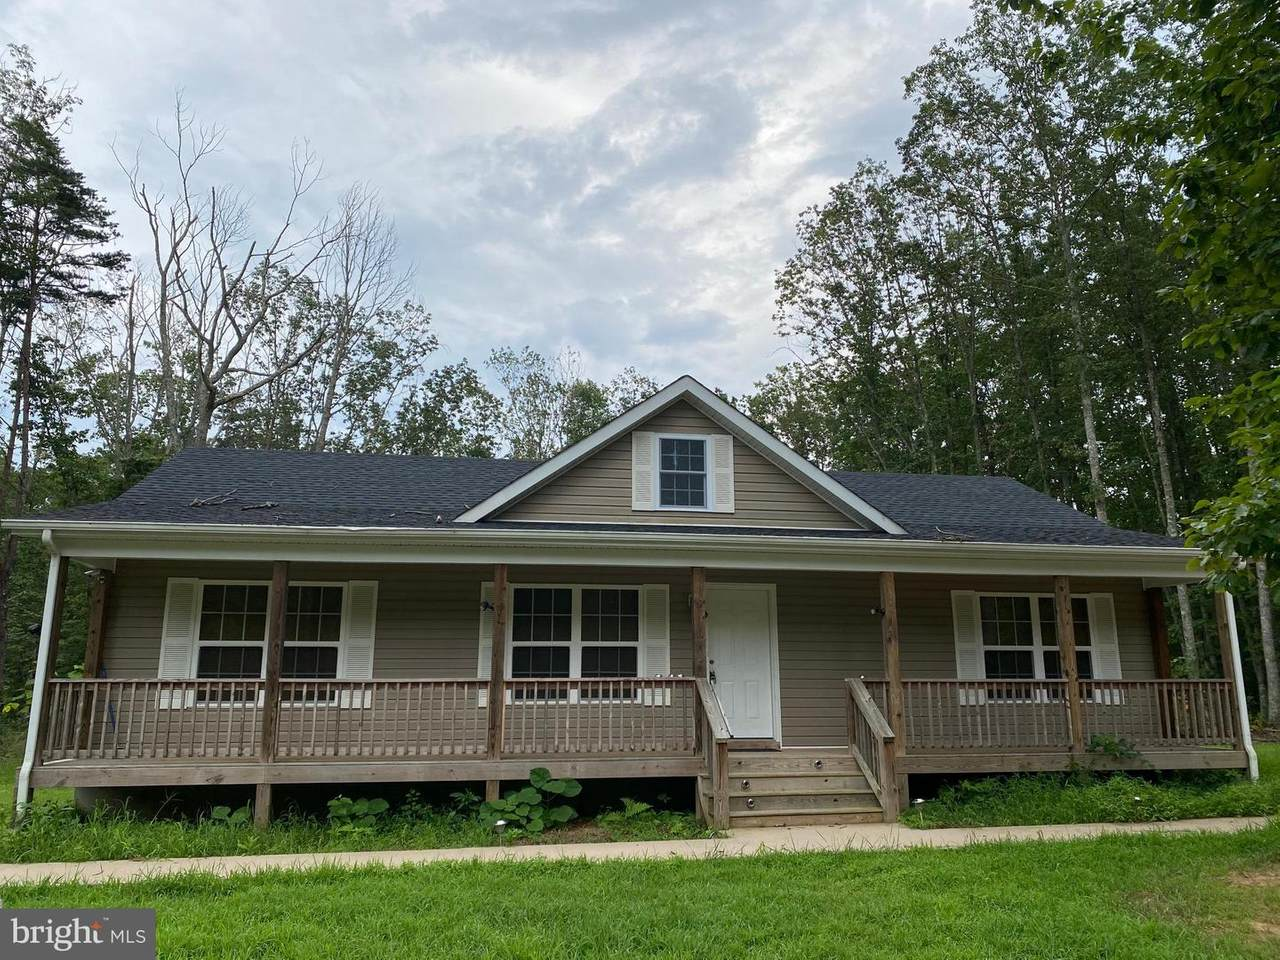 8397 Gold Dale Road - Photo 1